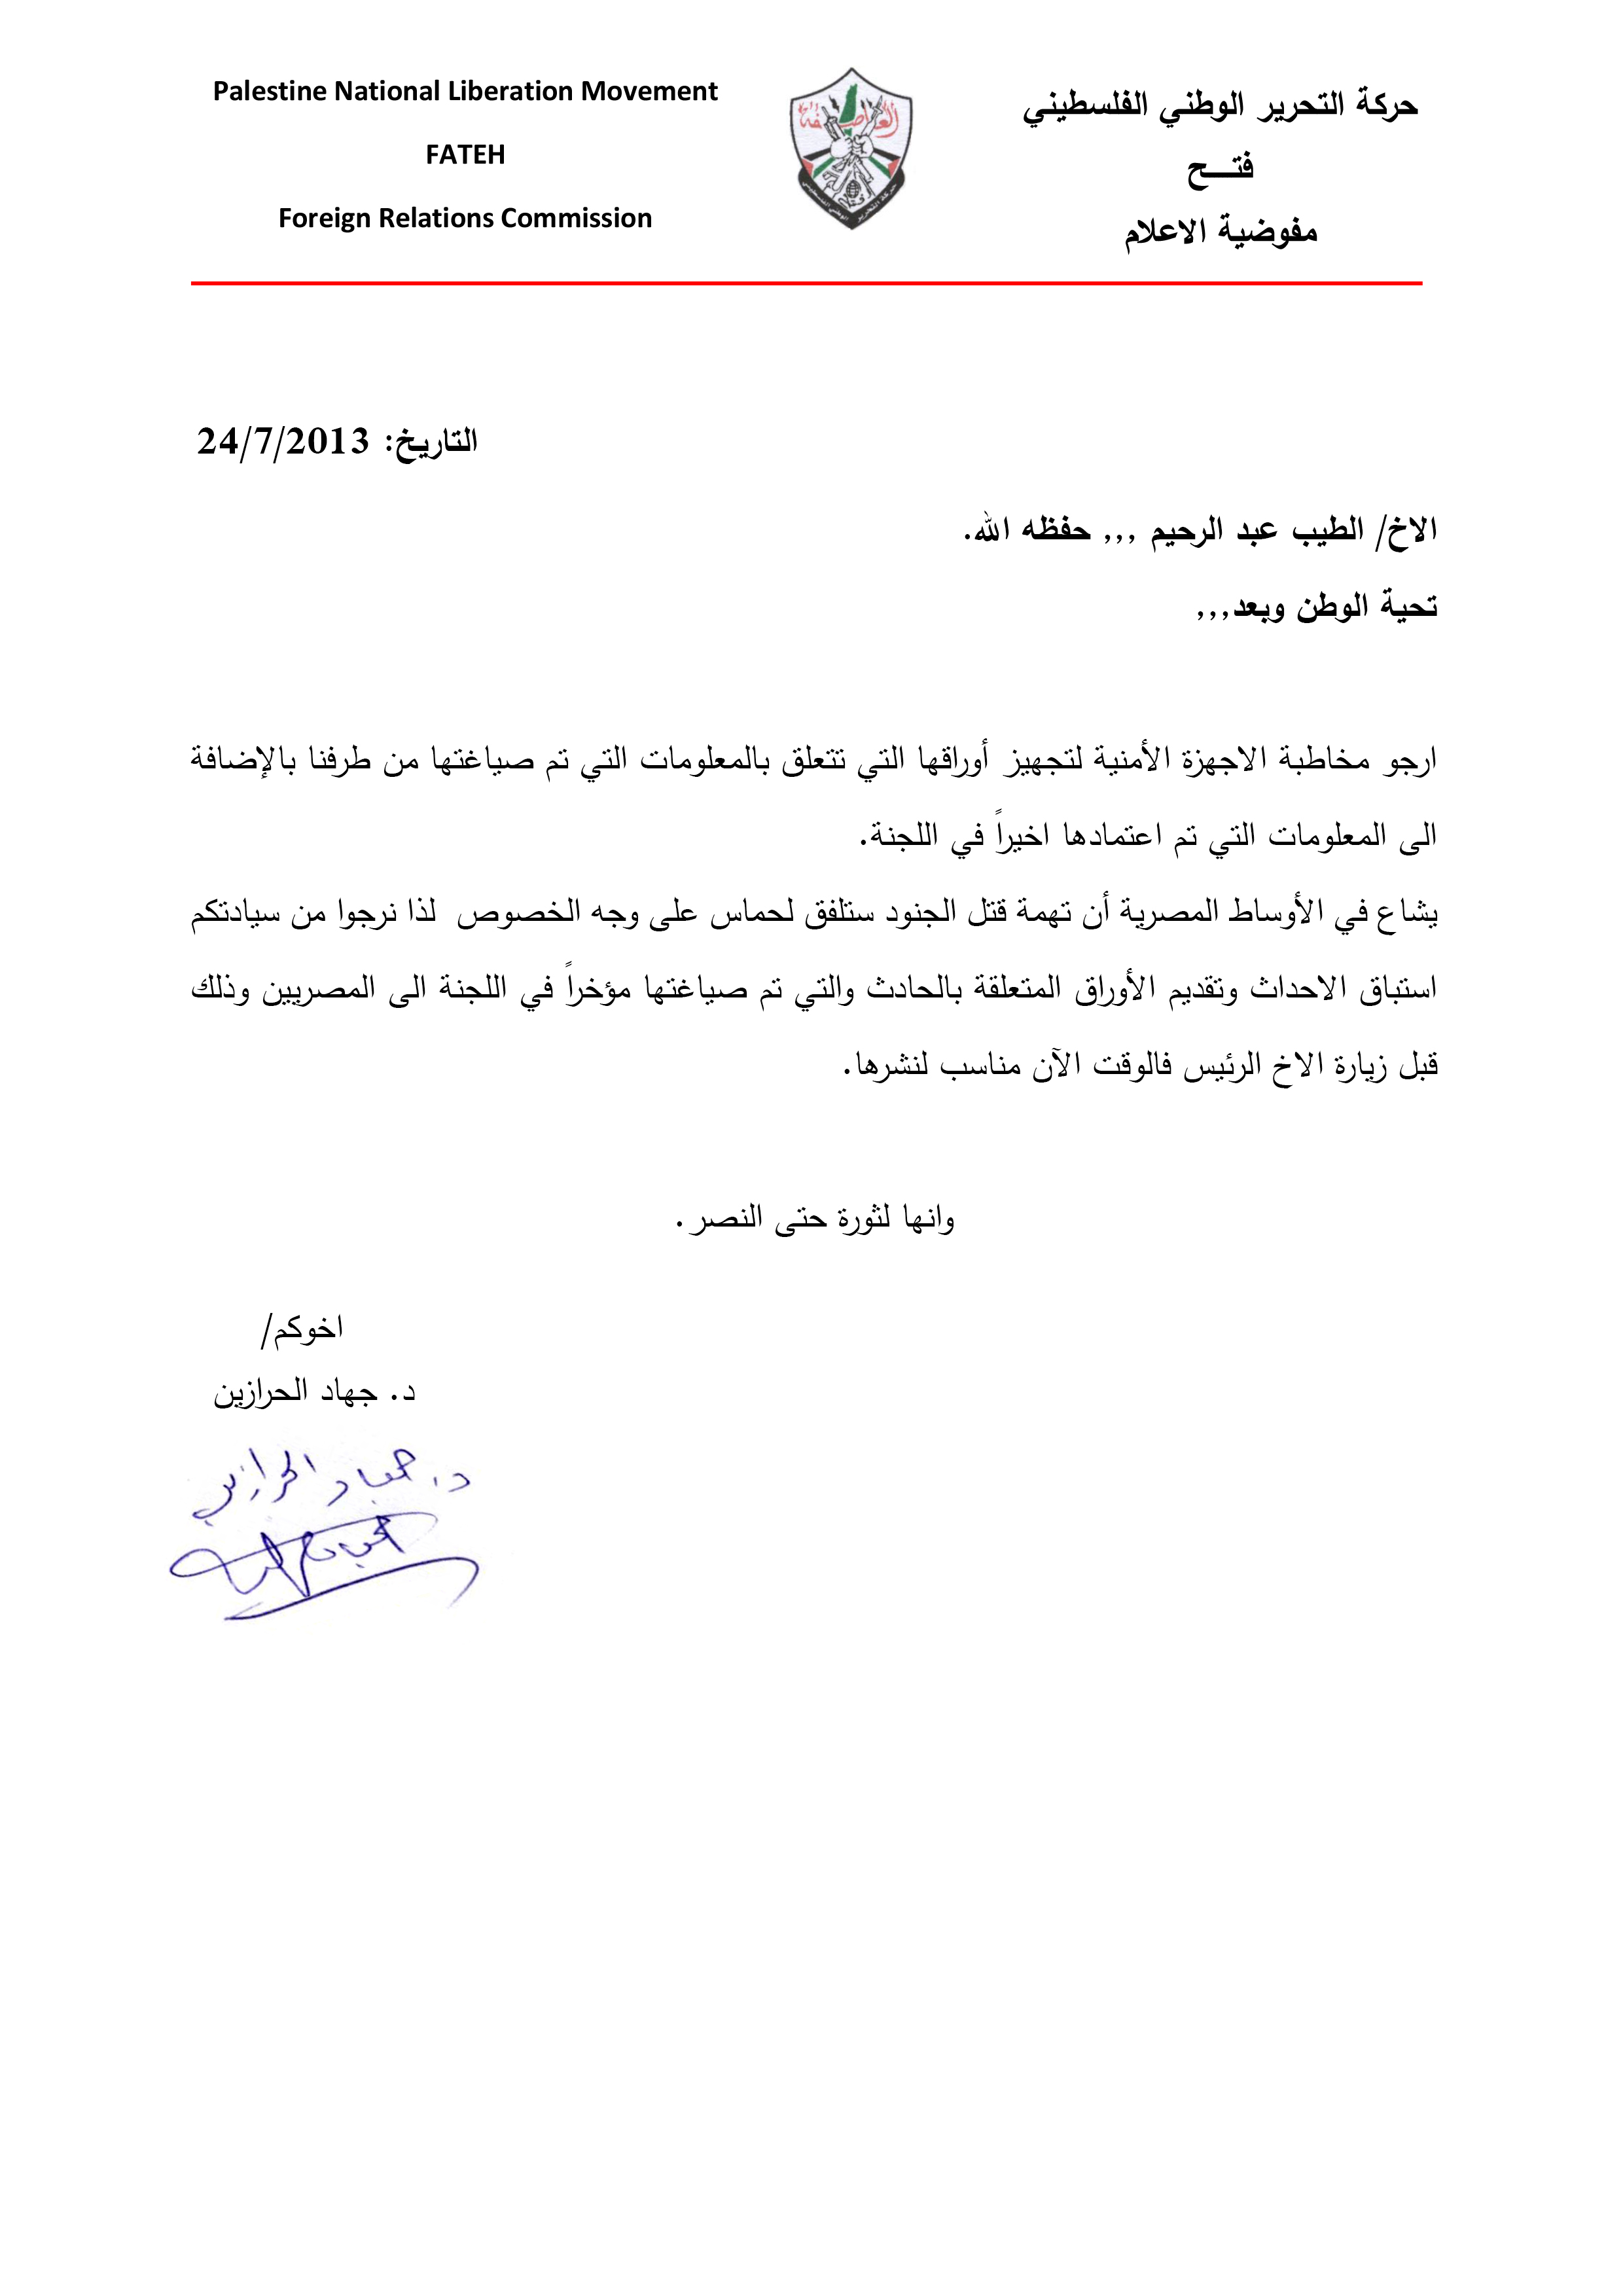 Hamas Forges Letters From Fatah Update Elder Of Ziyon